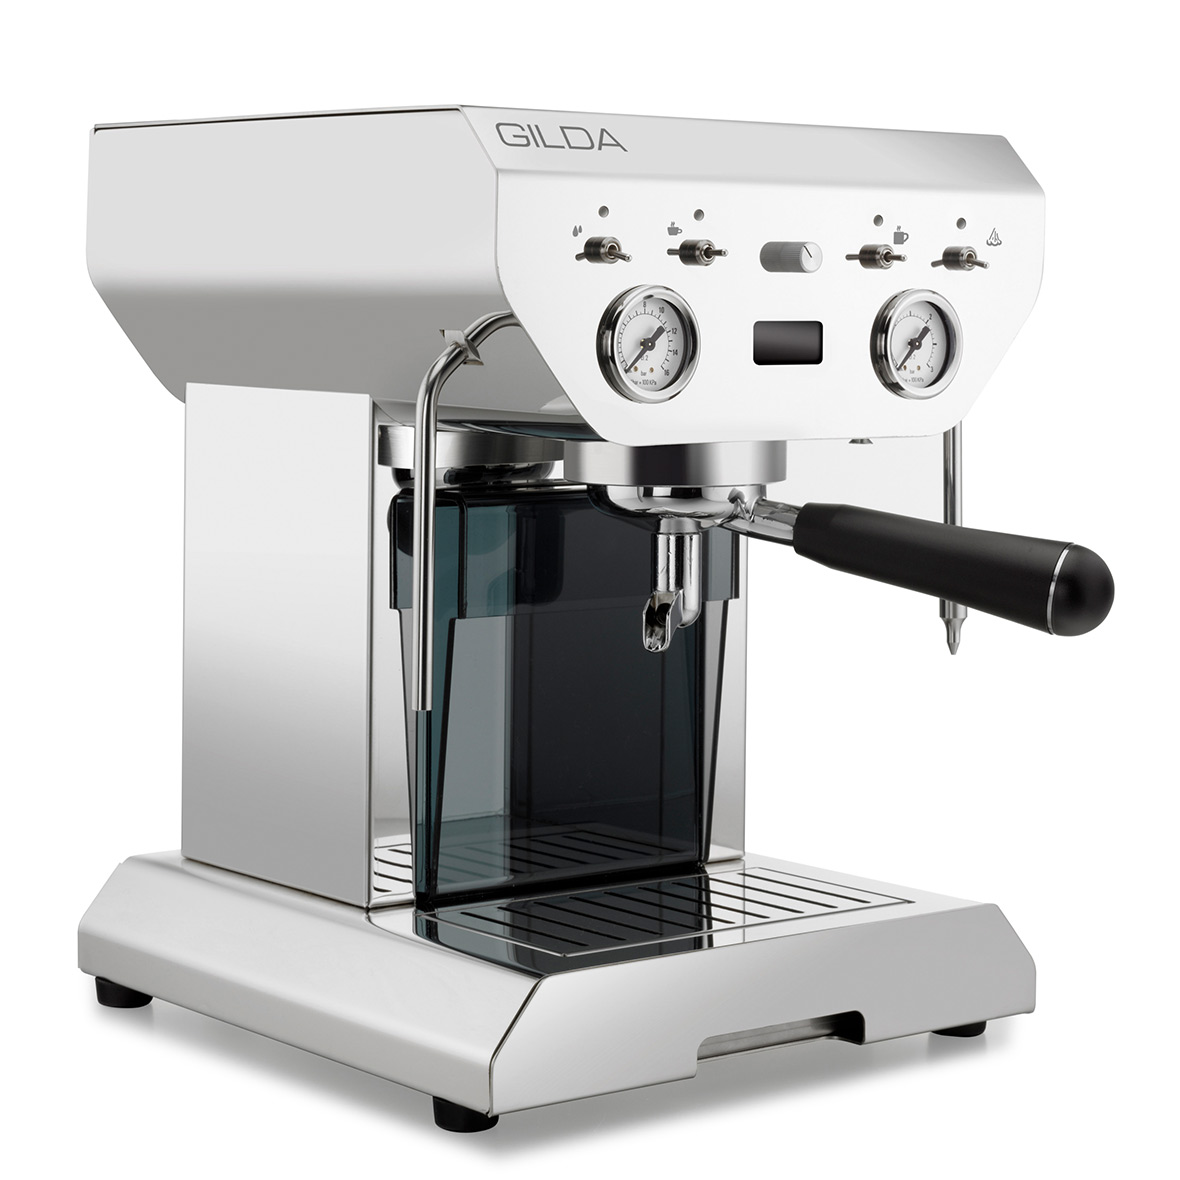 Gilda Kaffemaschine Red Dot Winner 2012